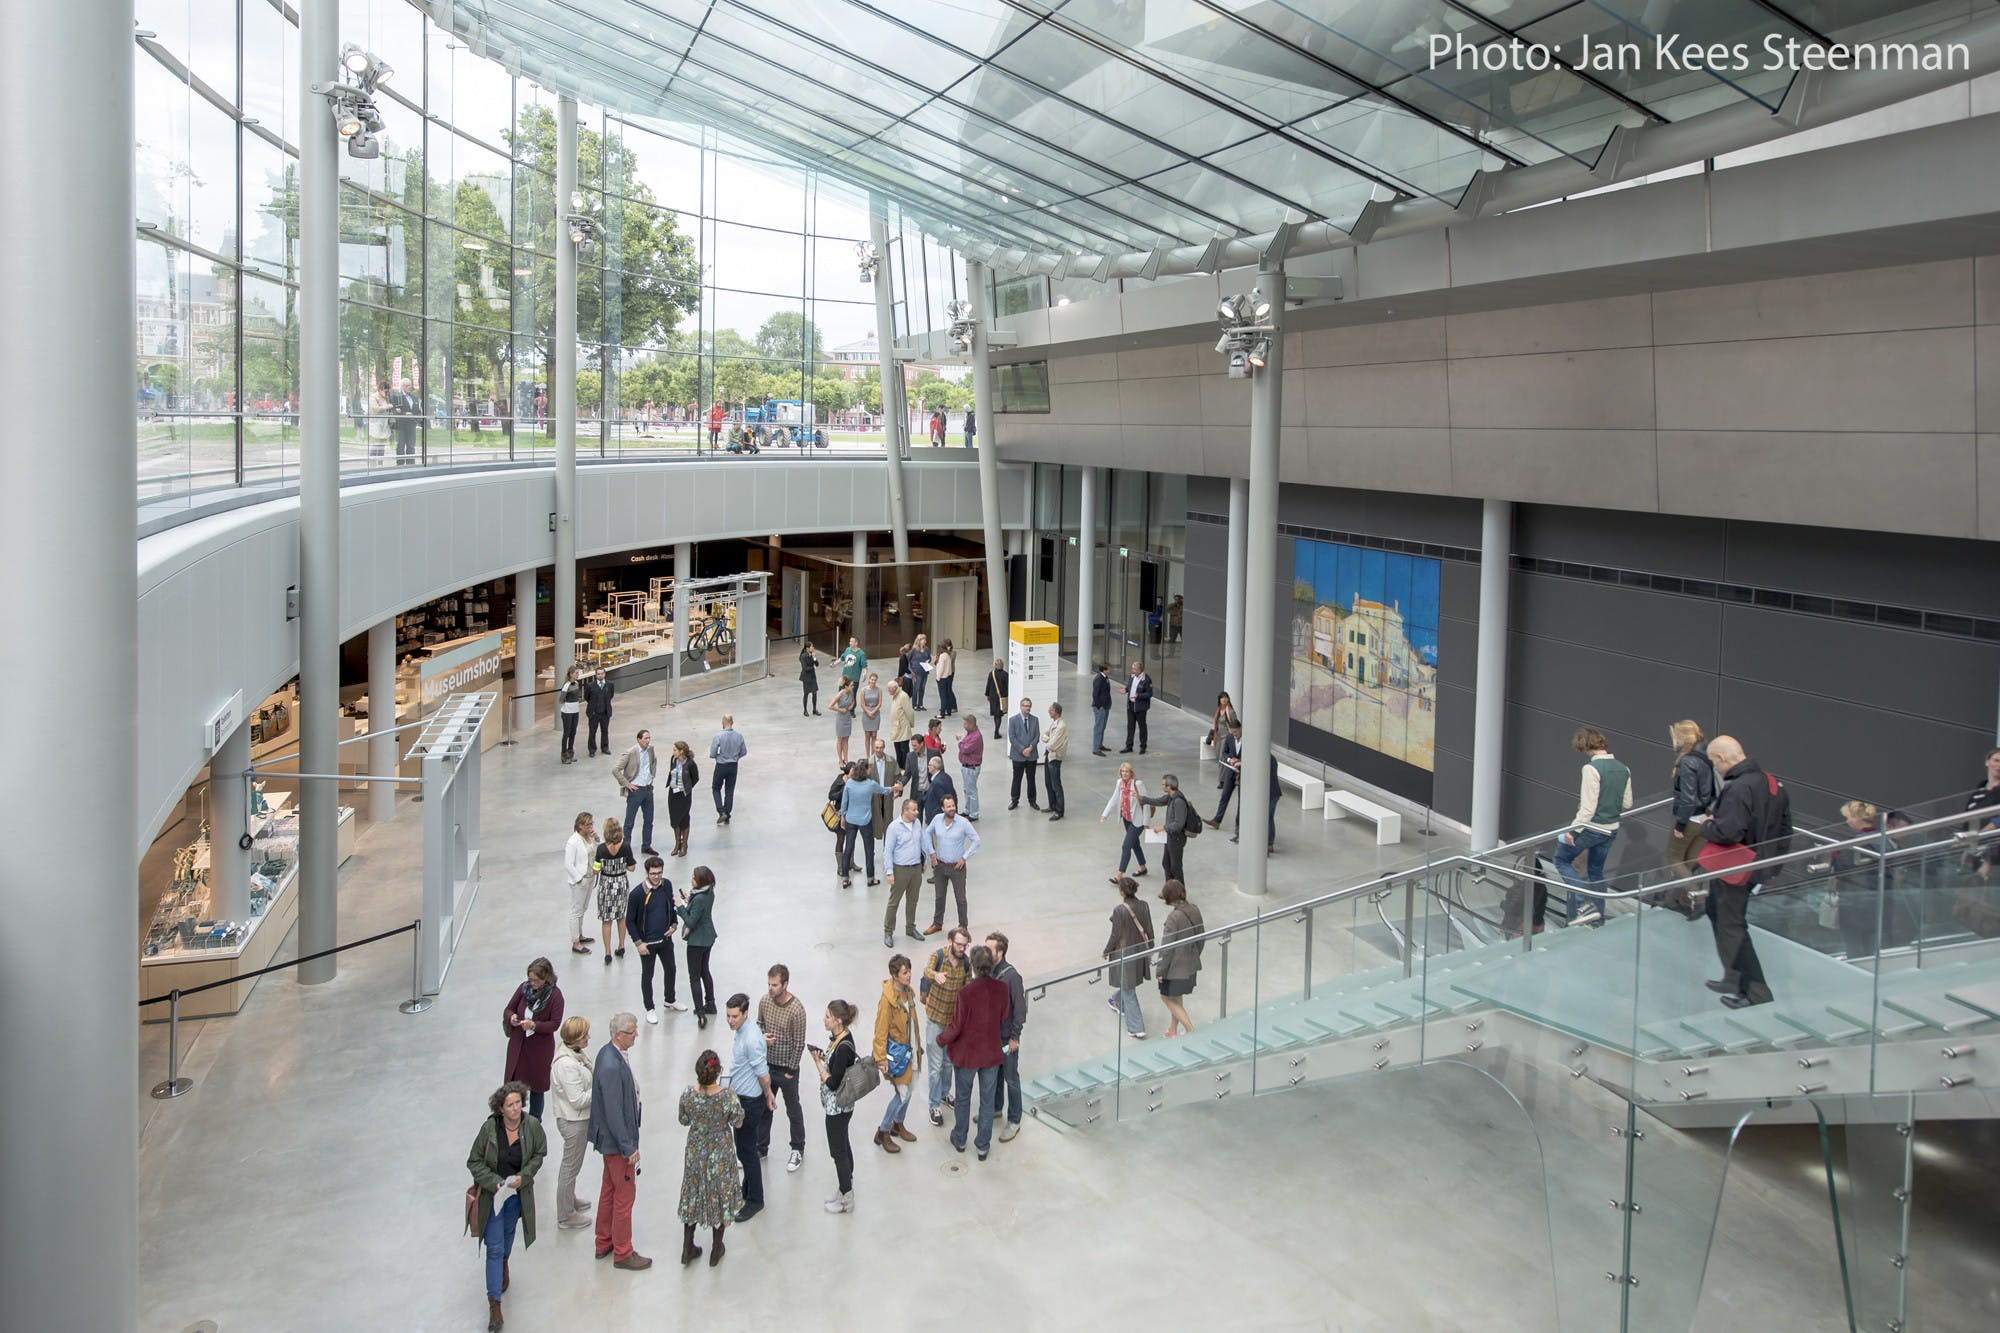 Van Gogh with photo credits museum entrance form inside